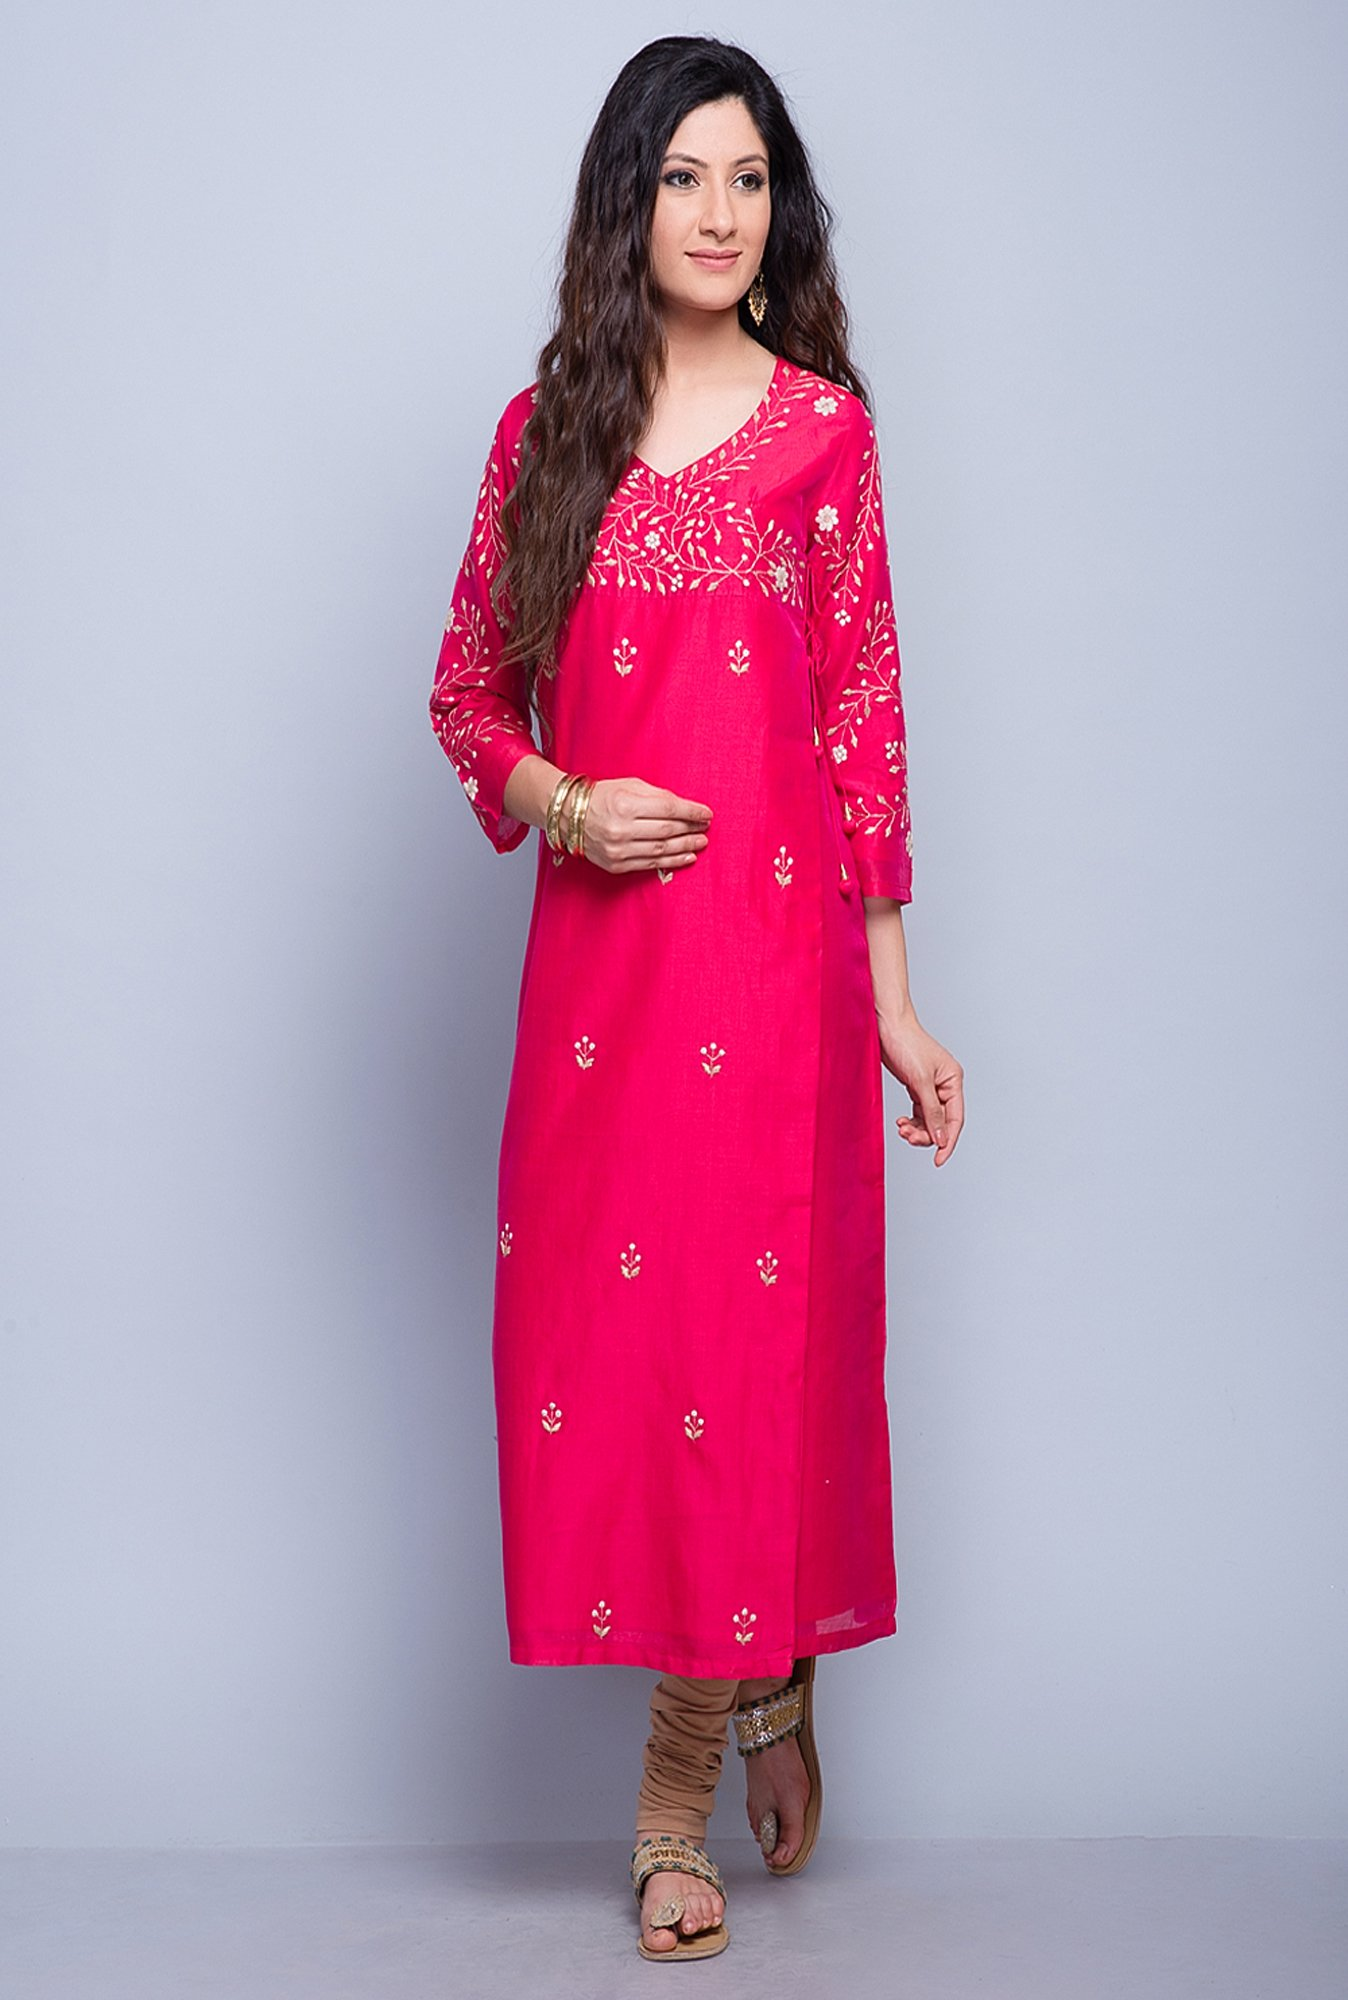 Fabindia Pink Embroidered Kurta